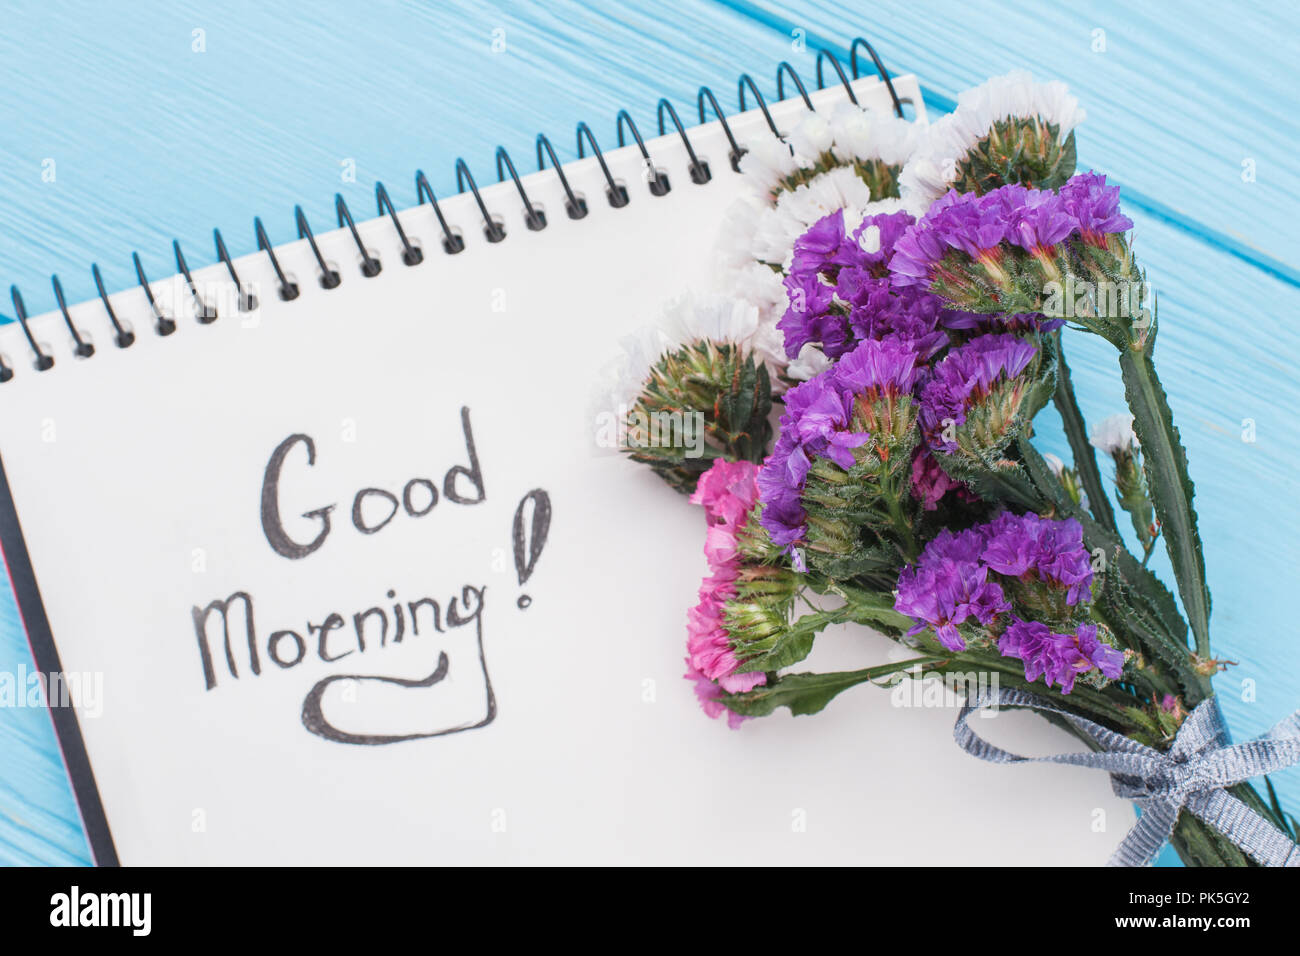 Good Morning Wish Concept Bouquet Of Statice Limonium Flowers And